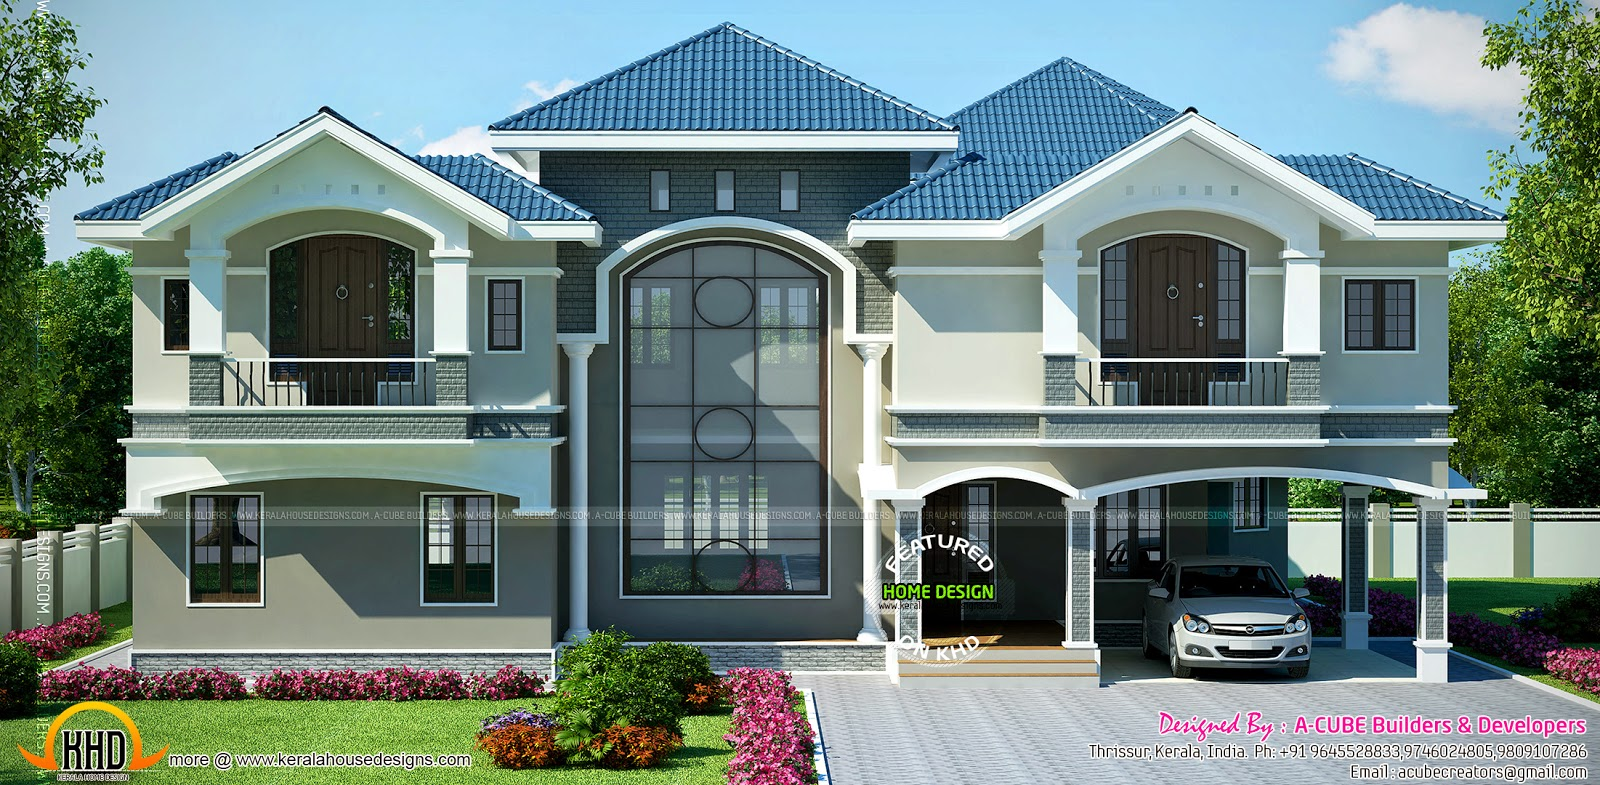 Super luxury house in beautiful style kerala home design for New luxury home plans